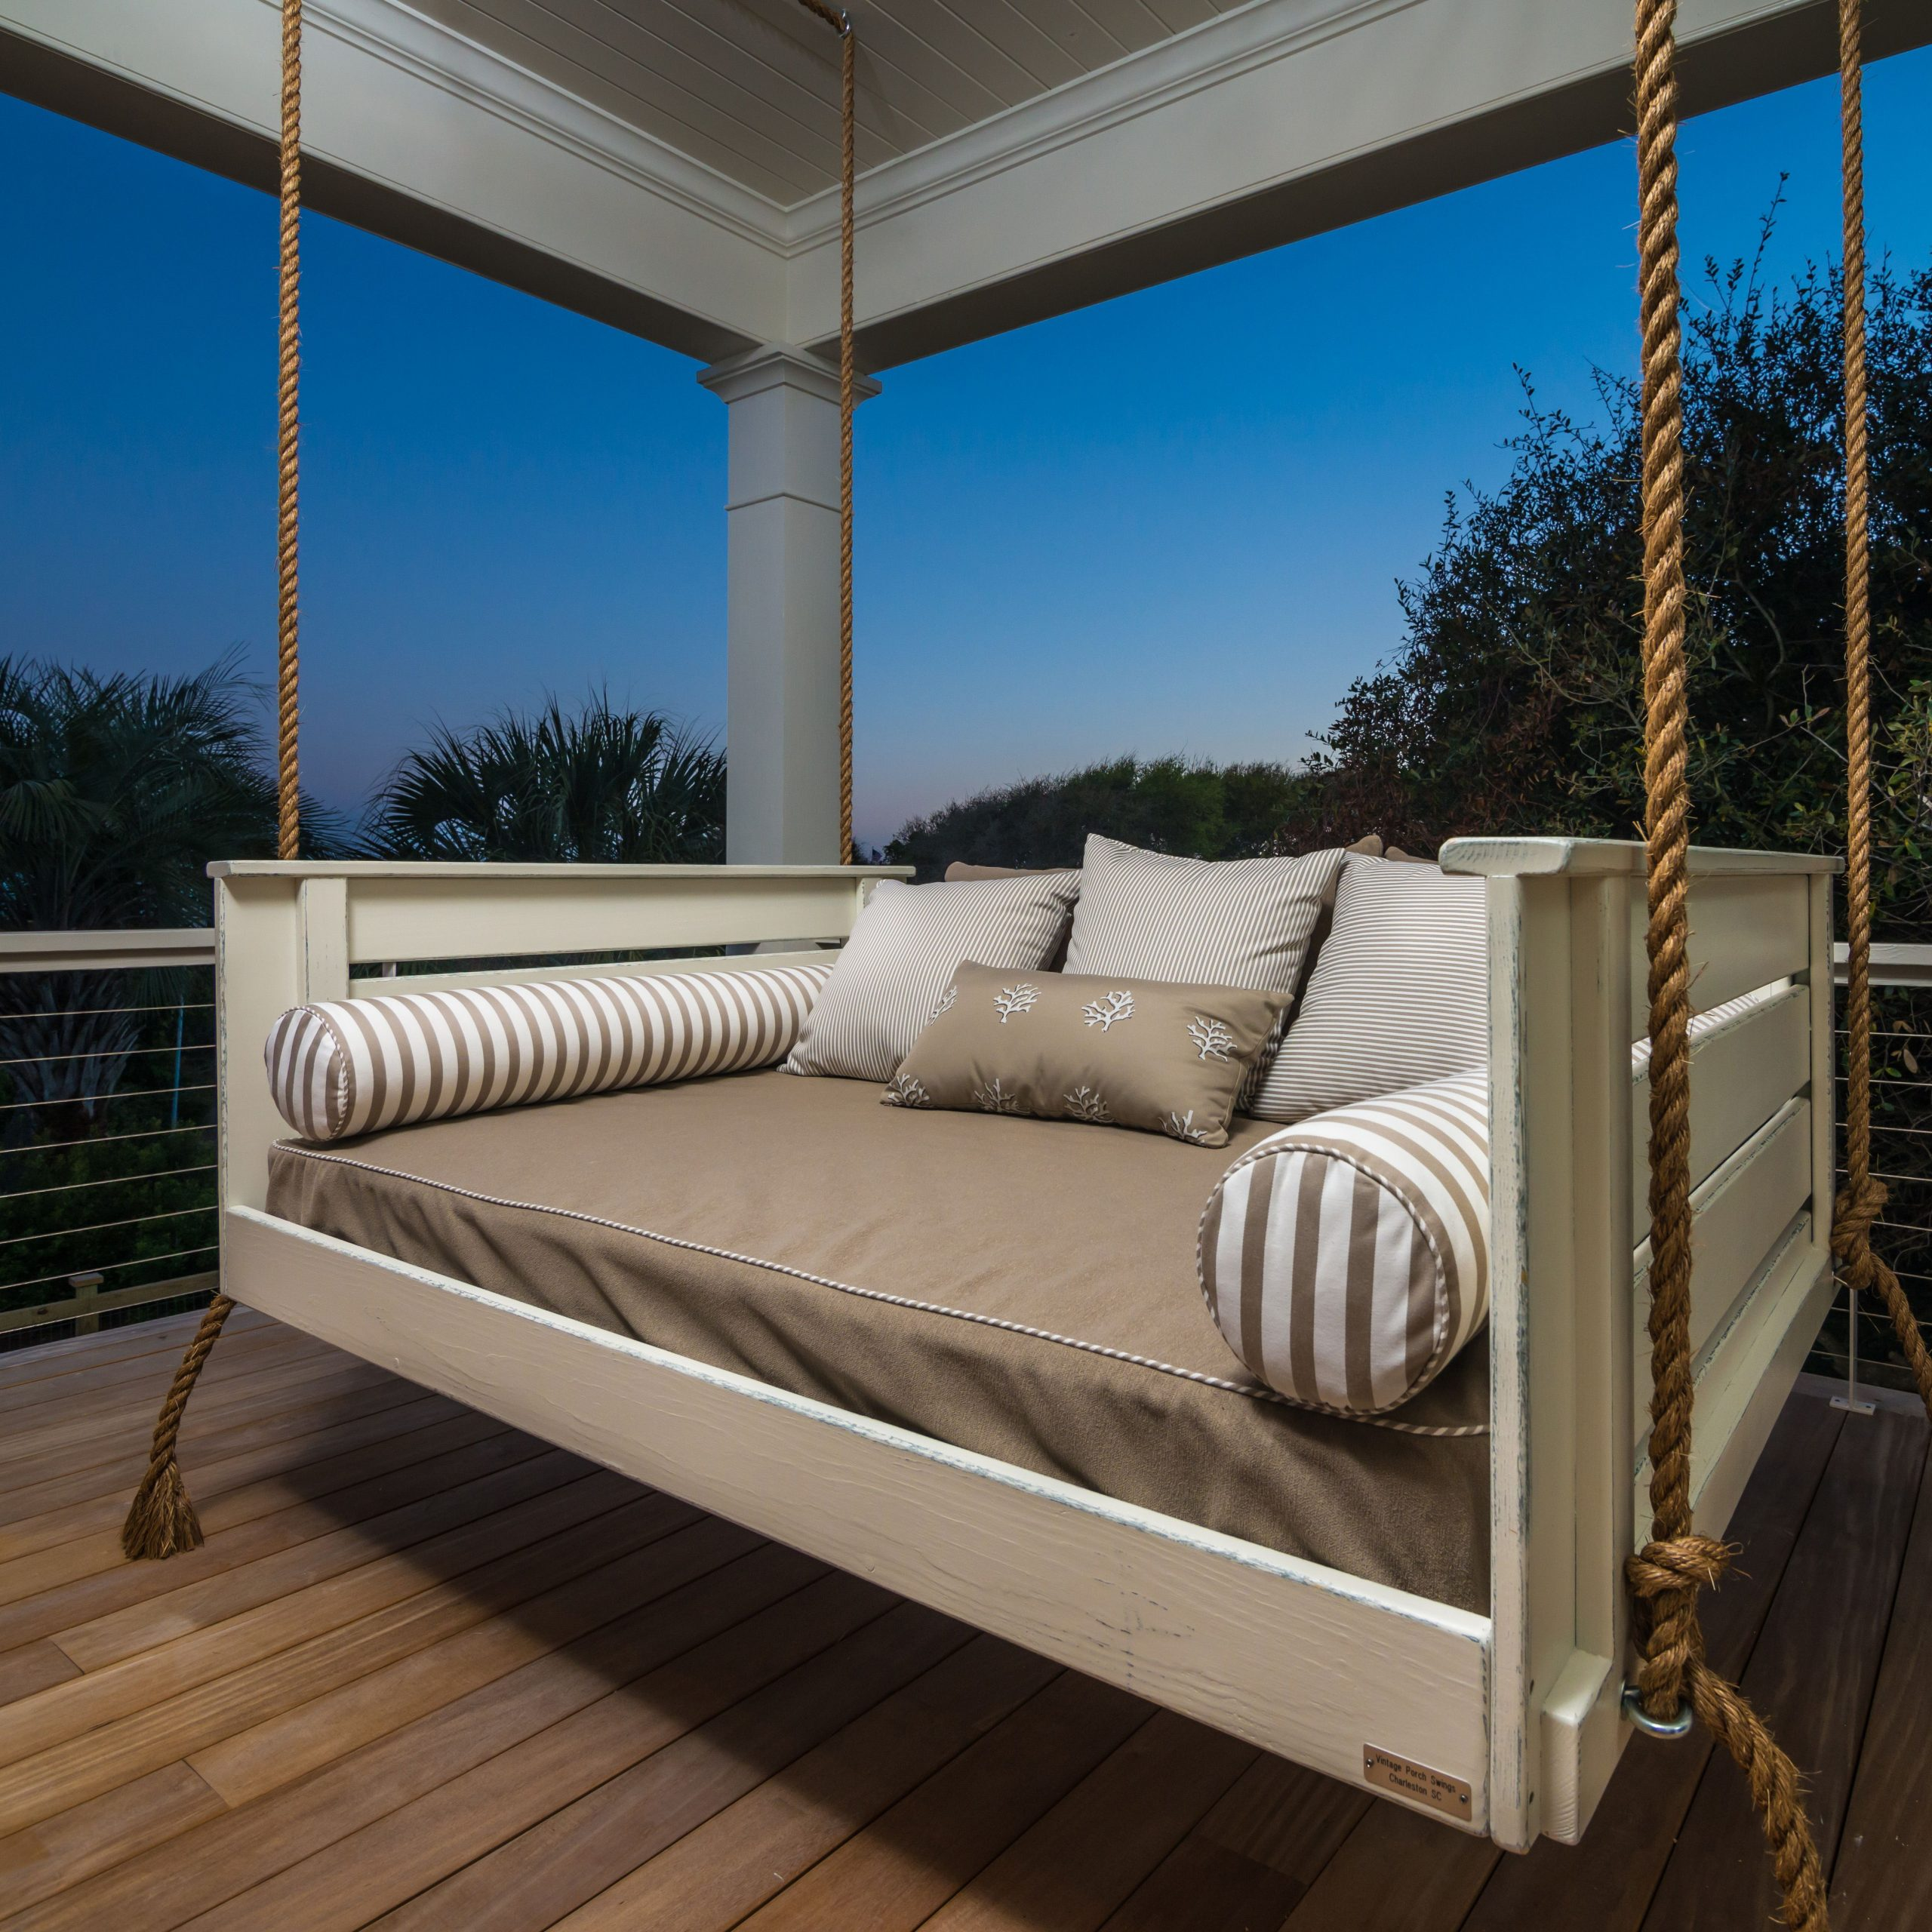 New Hanging Daybed Swing – New Design Model Inside Hanging Daybed Rope Porch Swings (Image 19 of 25)